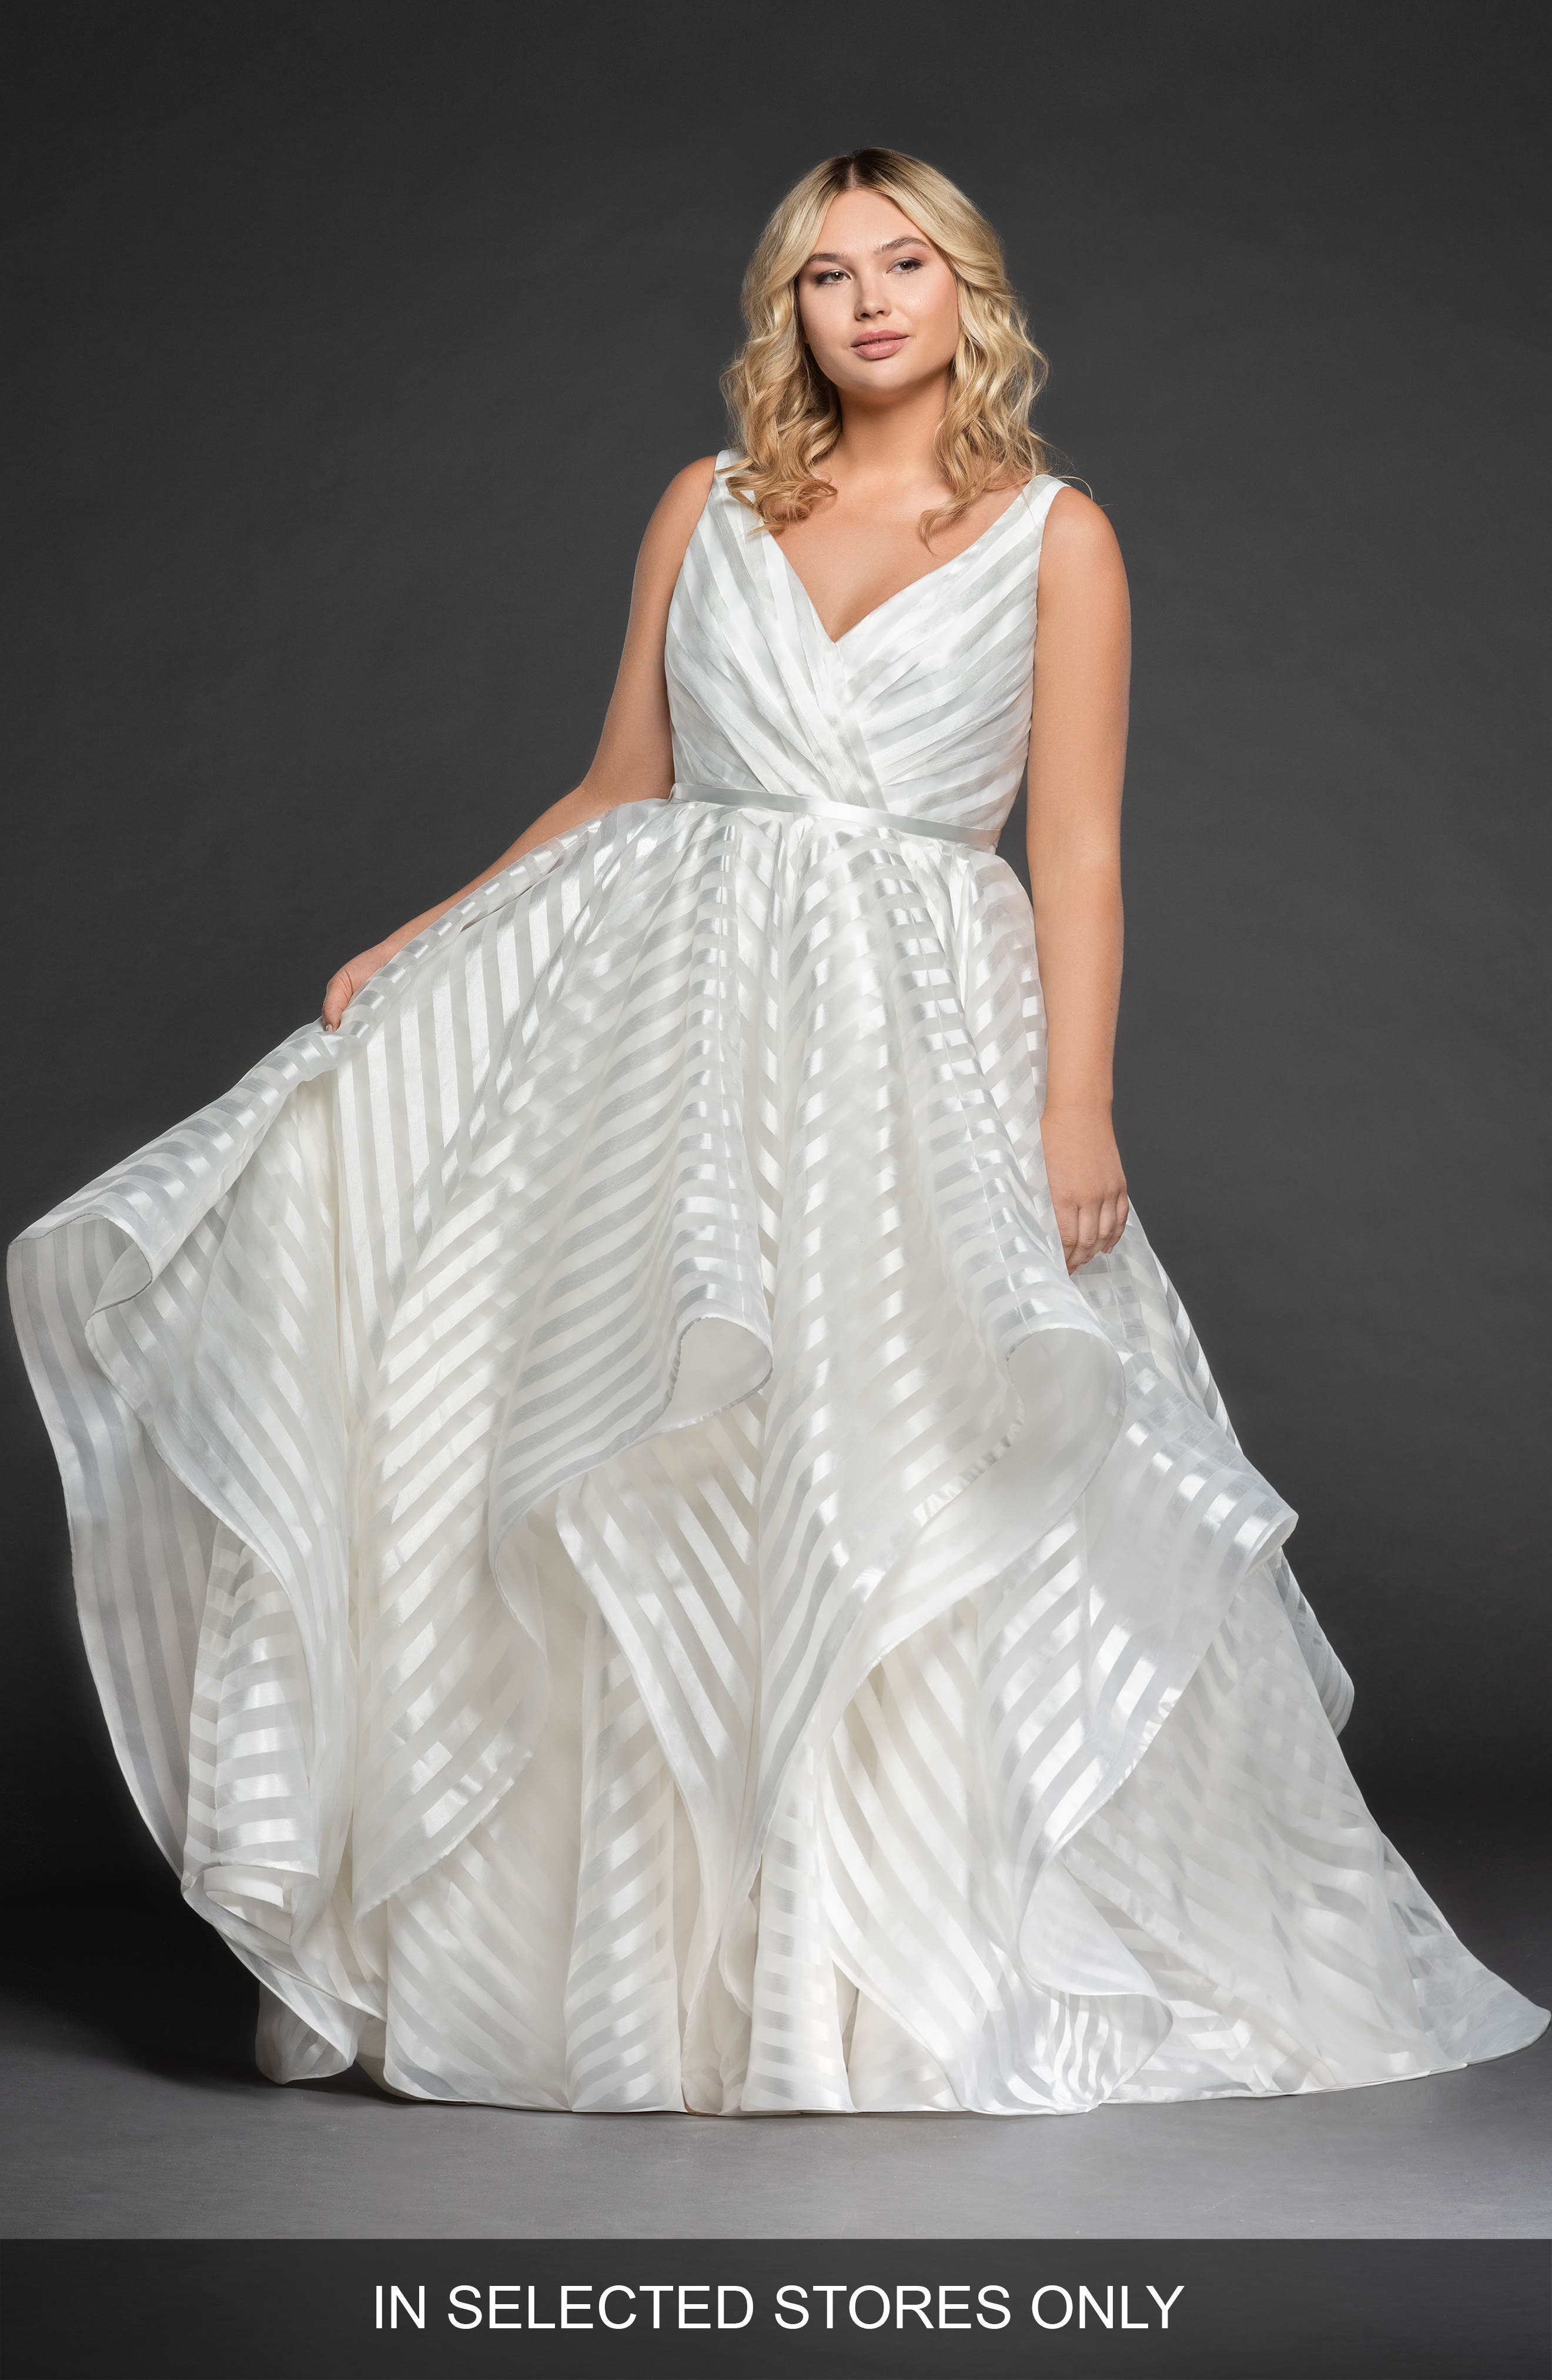 fc3682c31566 Plus Size Hayley Paige Decklyn Stripe Organza Ballgown, Size IN STORE ONLY  - Ivory